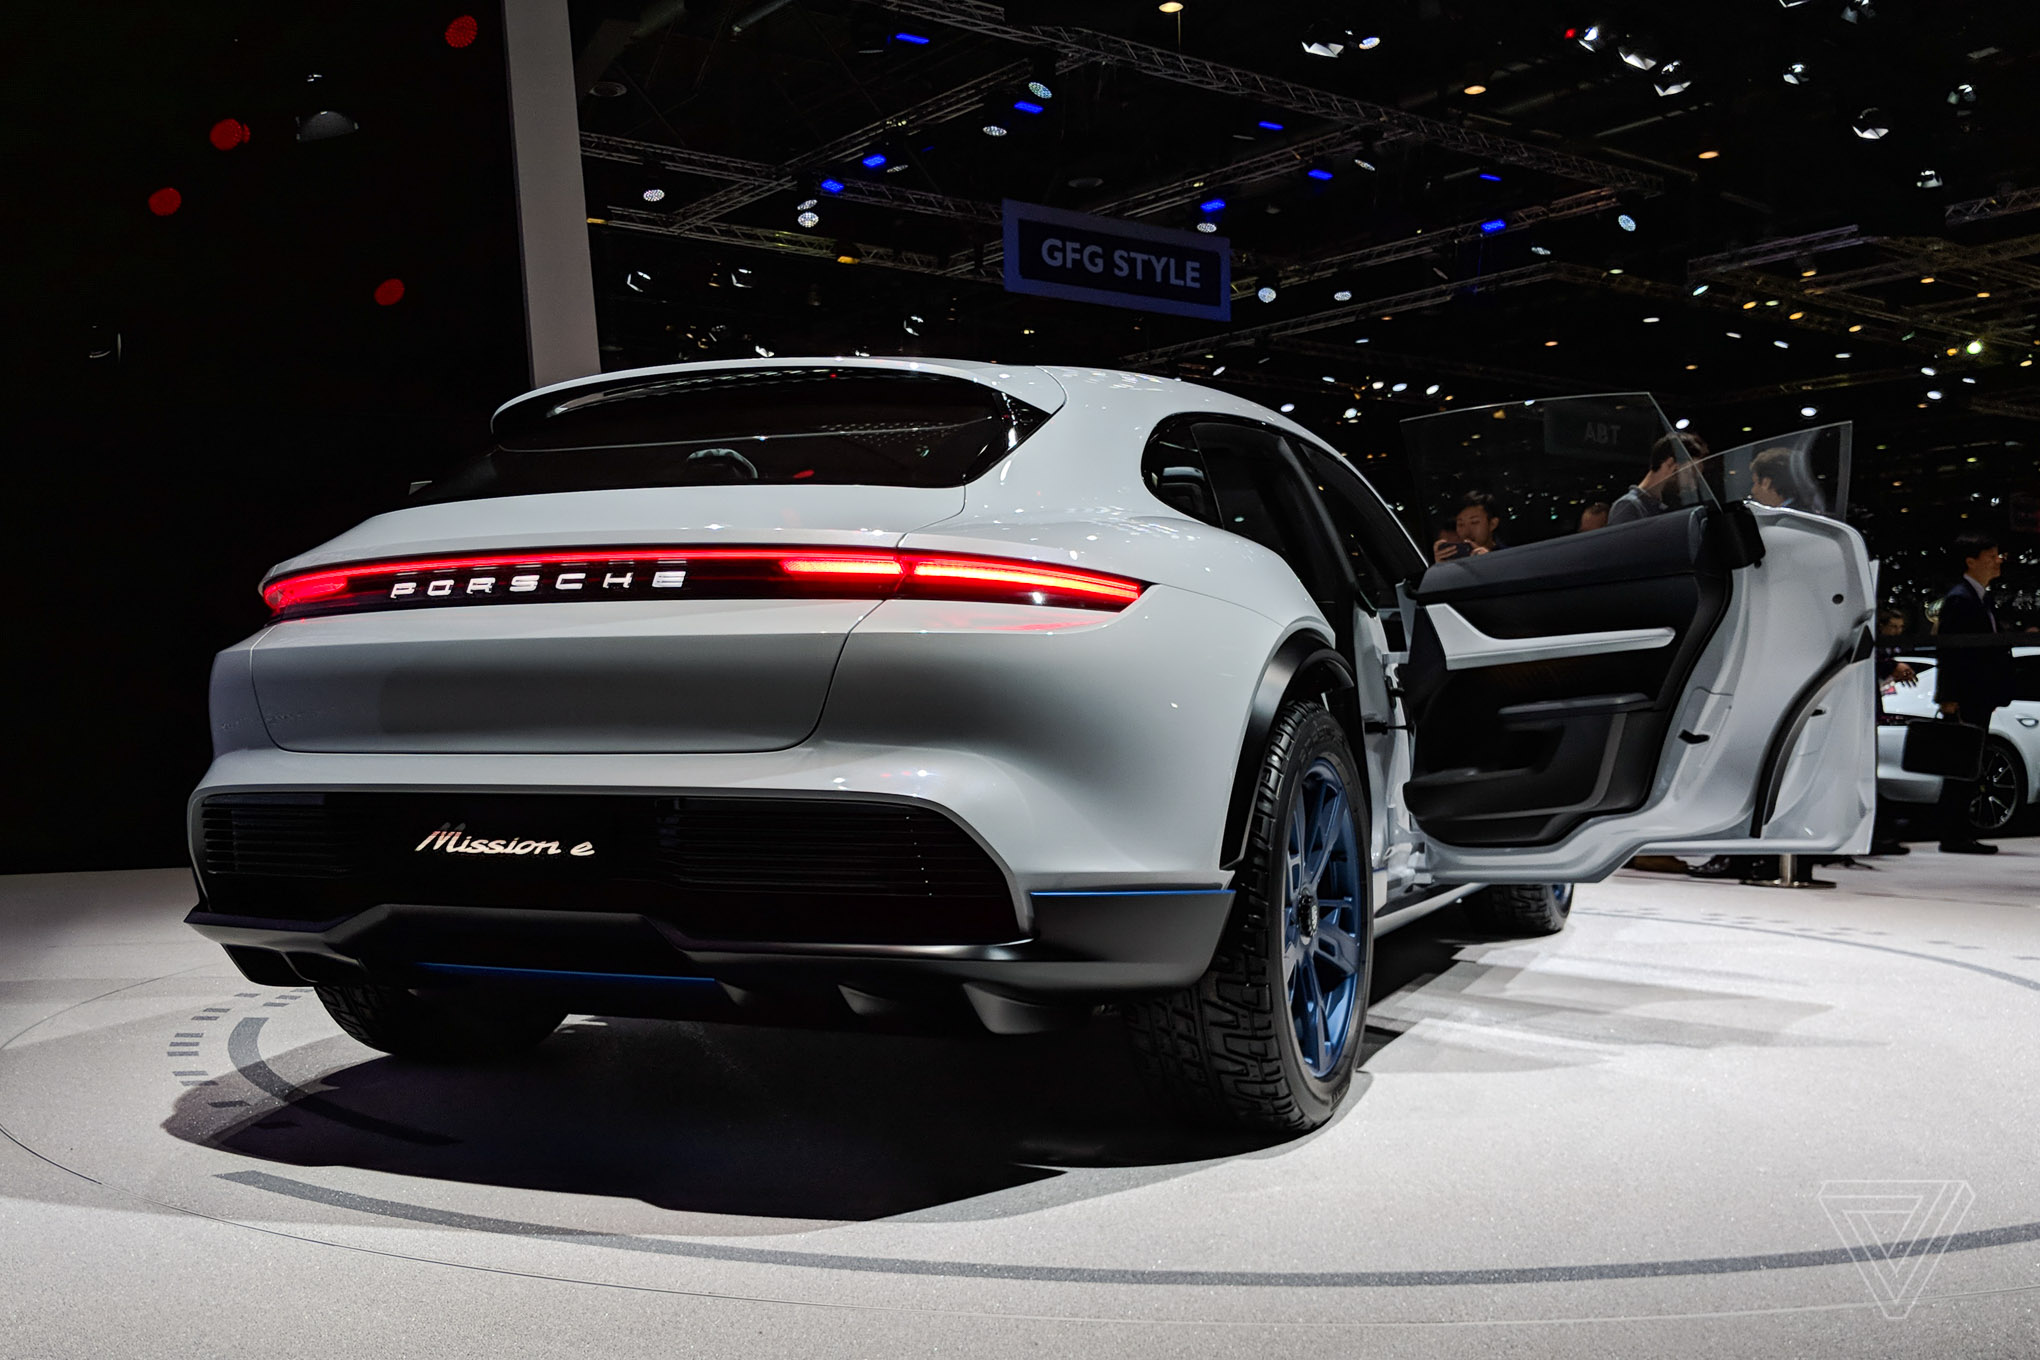 Porsche s new all electric suv concept is too pretty to go off road the verge - Geneva car show ...